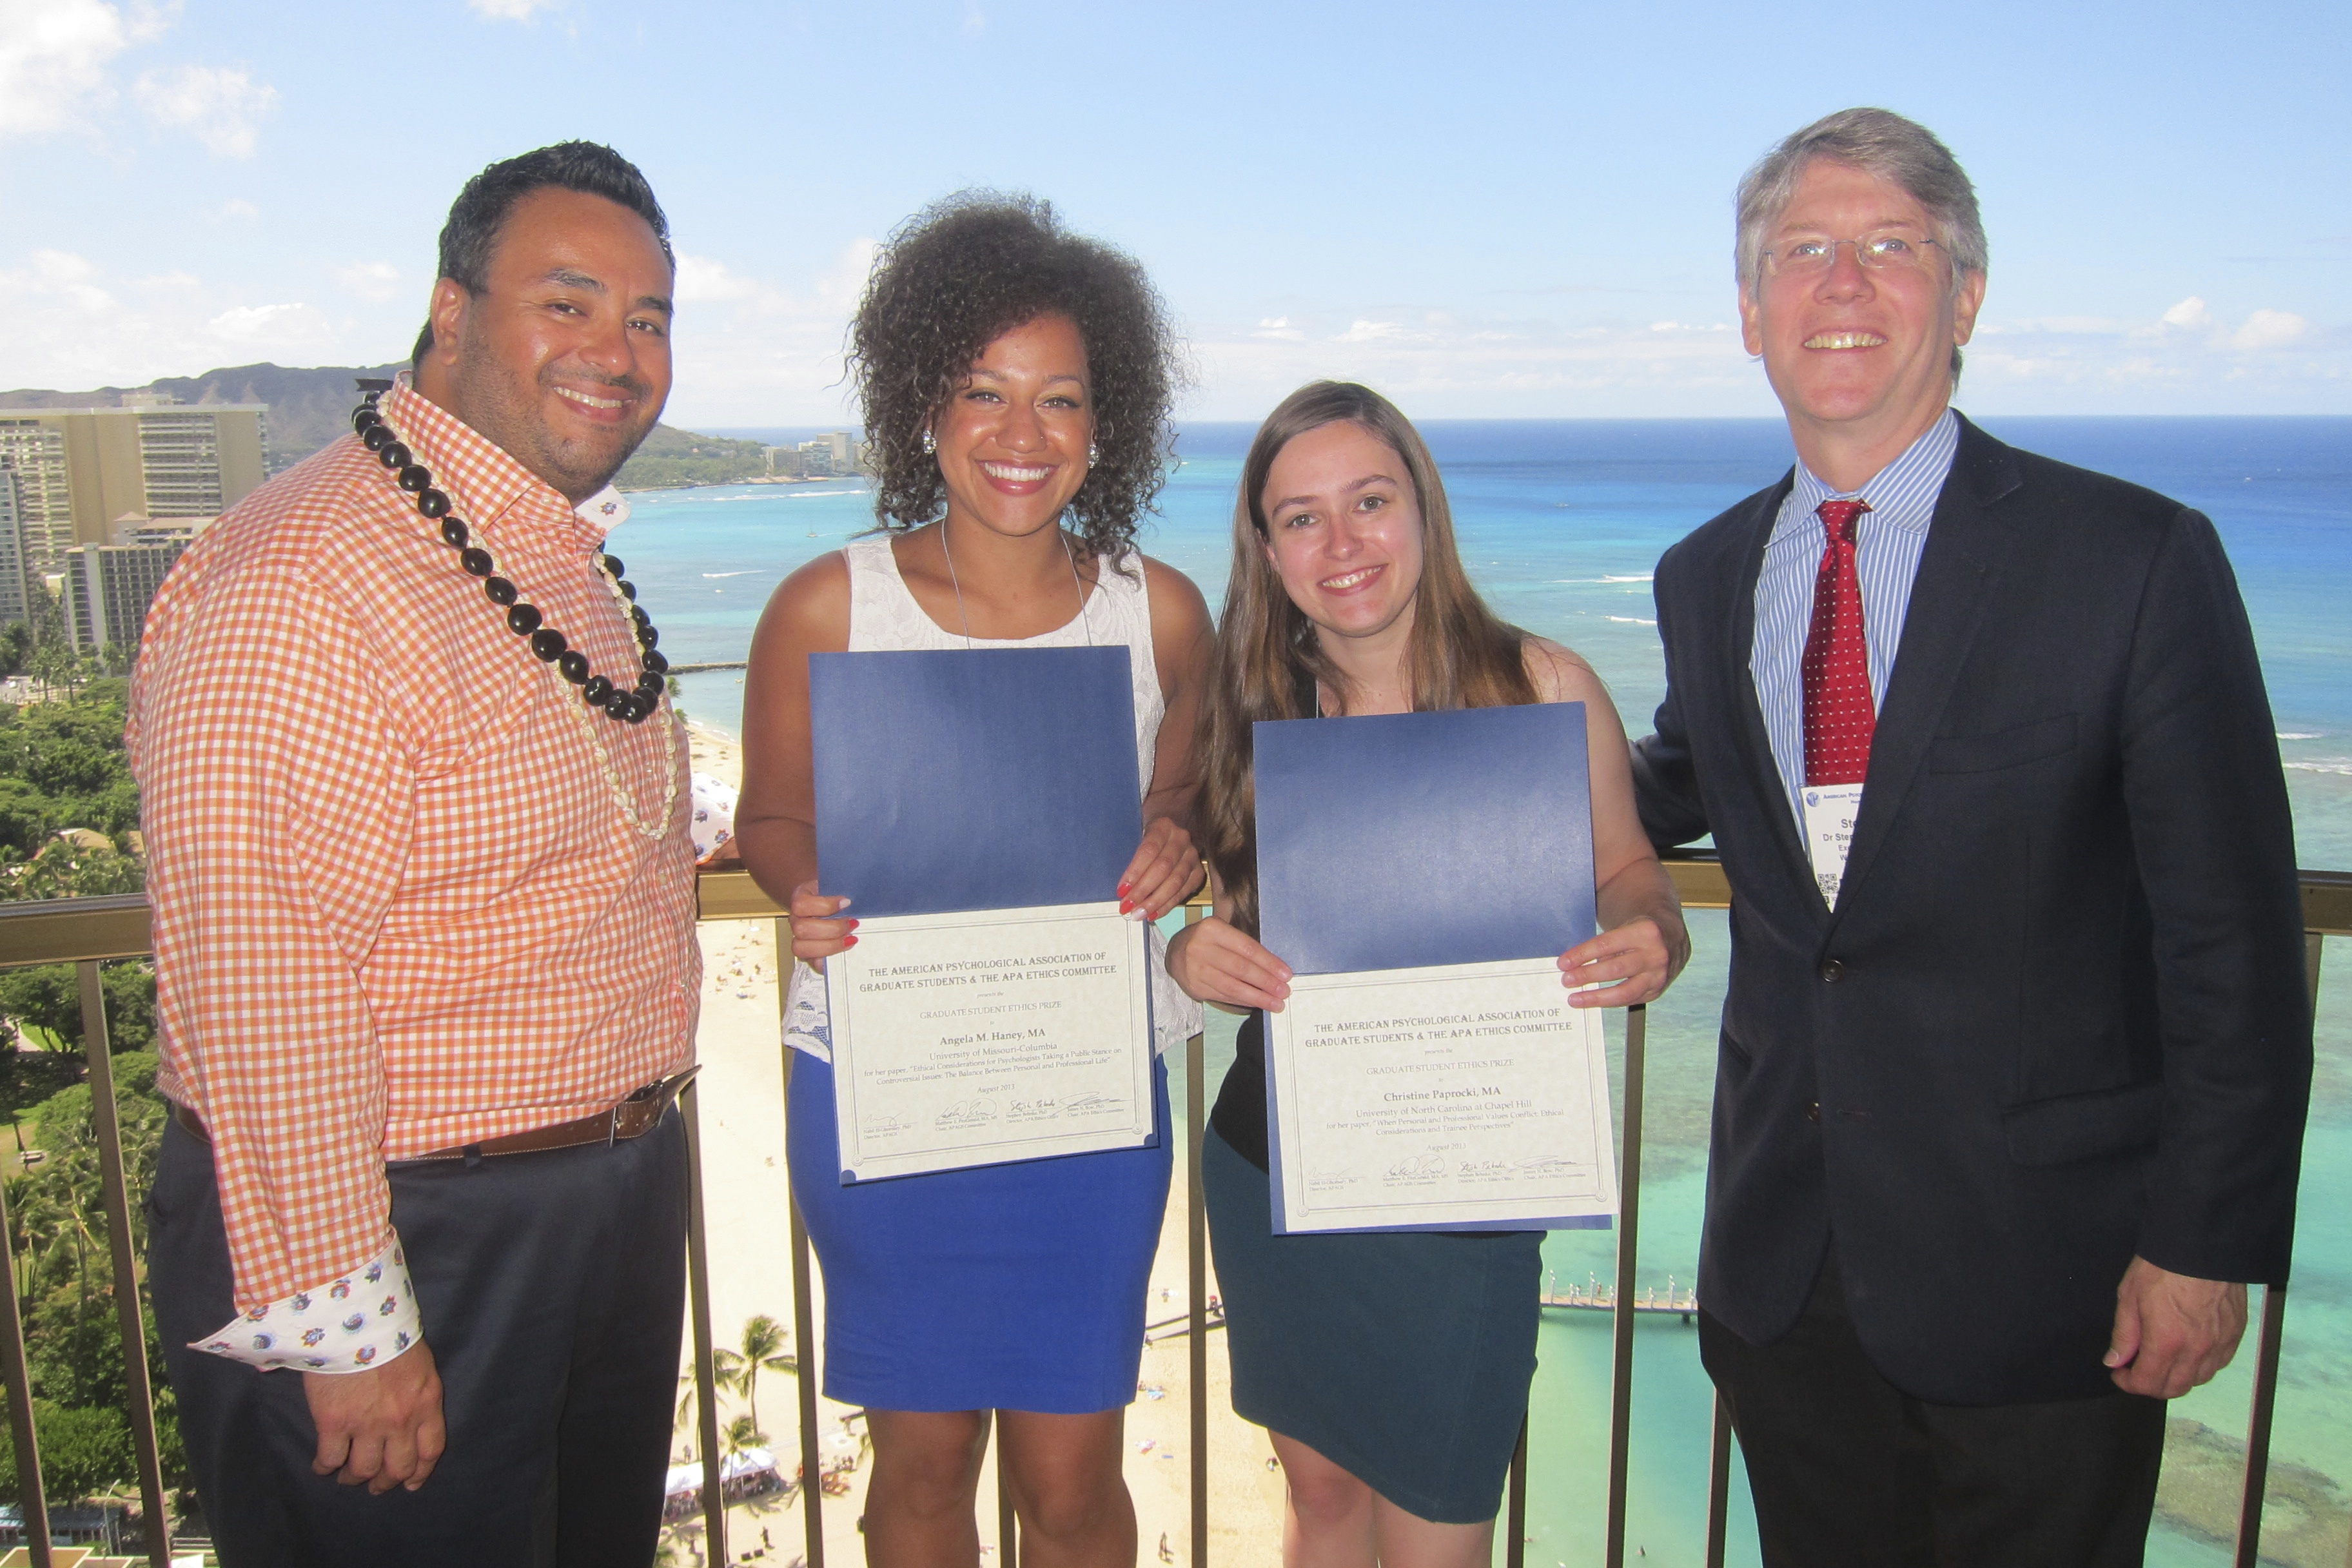 From L-R: Dr. Nabil El-Ghoroury, head of APAGS, stands with winners Ms. Angela Haeny and Ms. Christine Paprocki, and Dr. Steven Behnke, head of the Ethics Office, on the balcony of the APAGS Suite in Honolulu, Hawaii. (Source: APAGS).